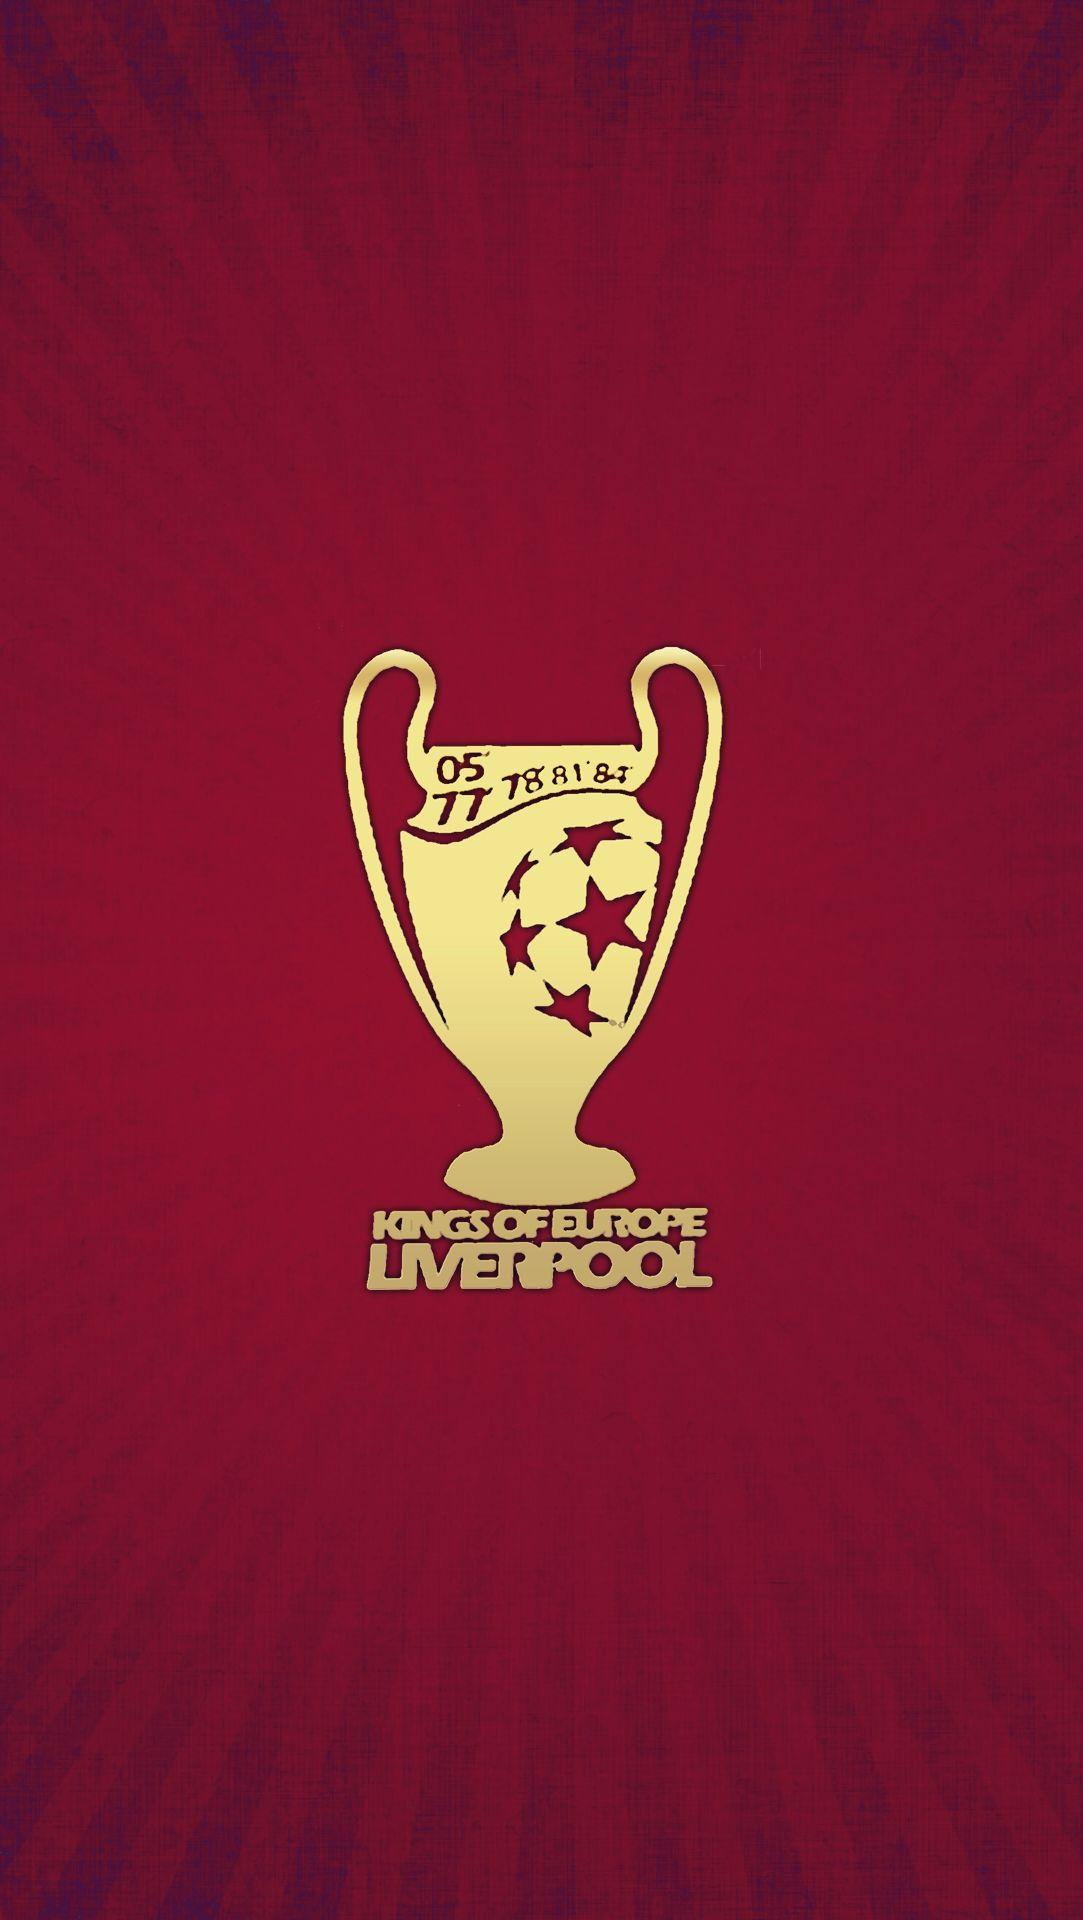 liverpool champions league iphone wallpapers wallpaper cave liverpool champions league iphone